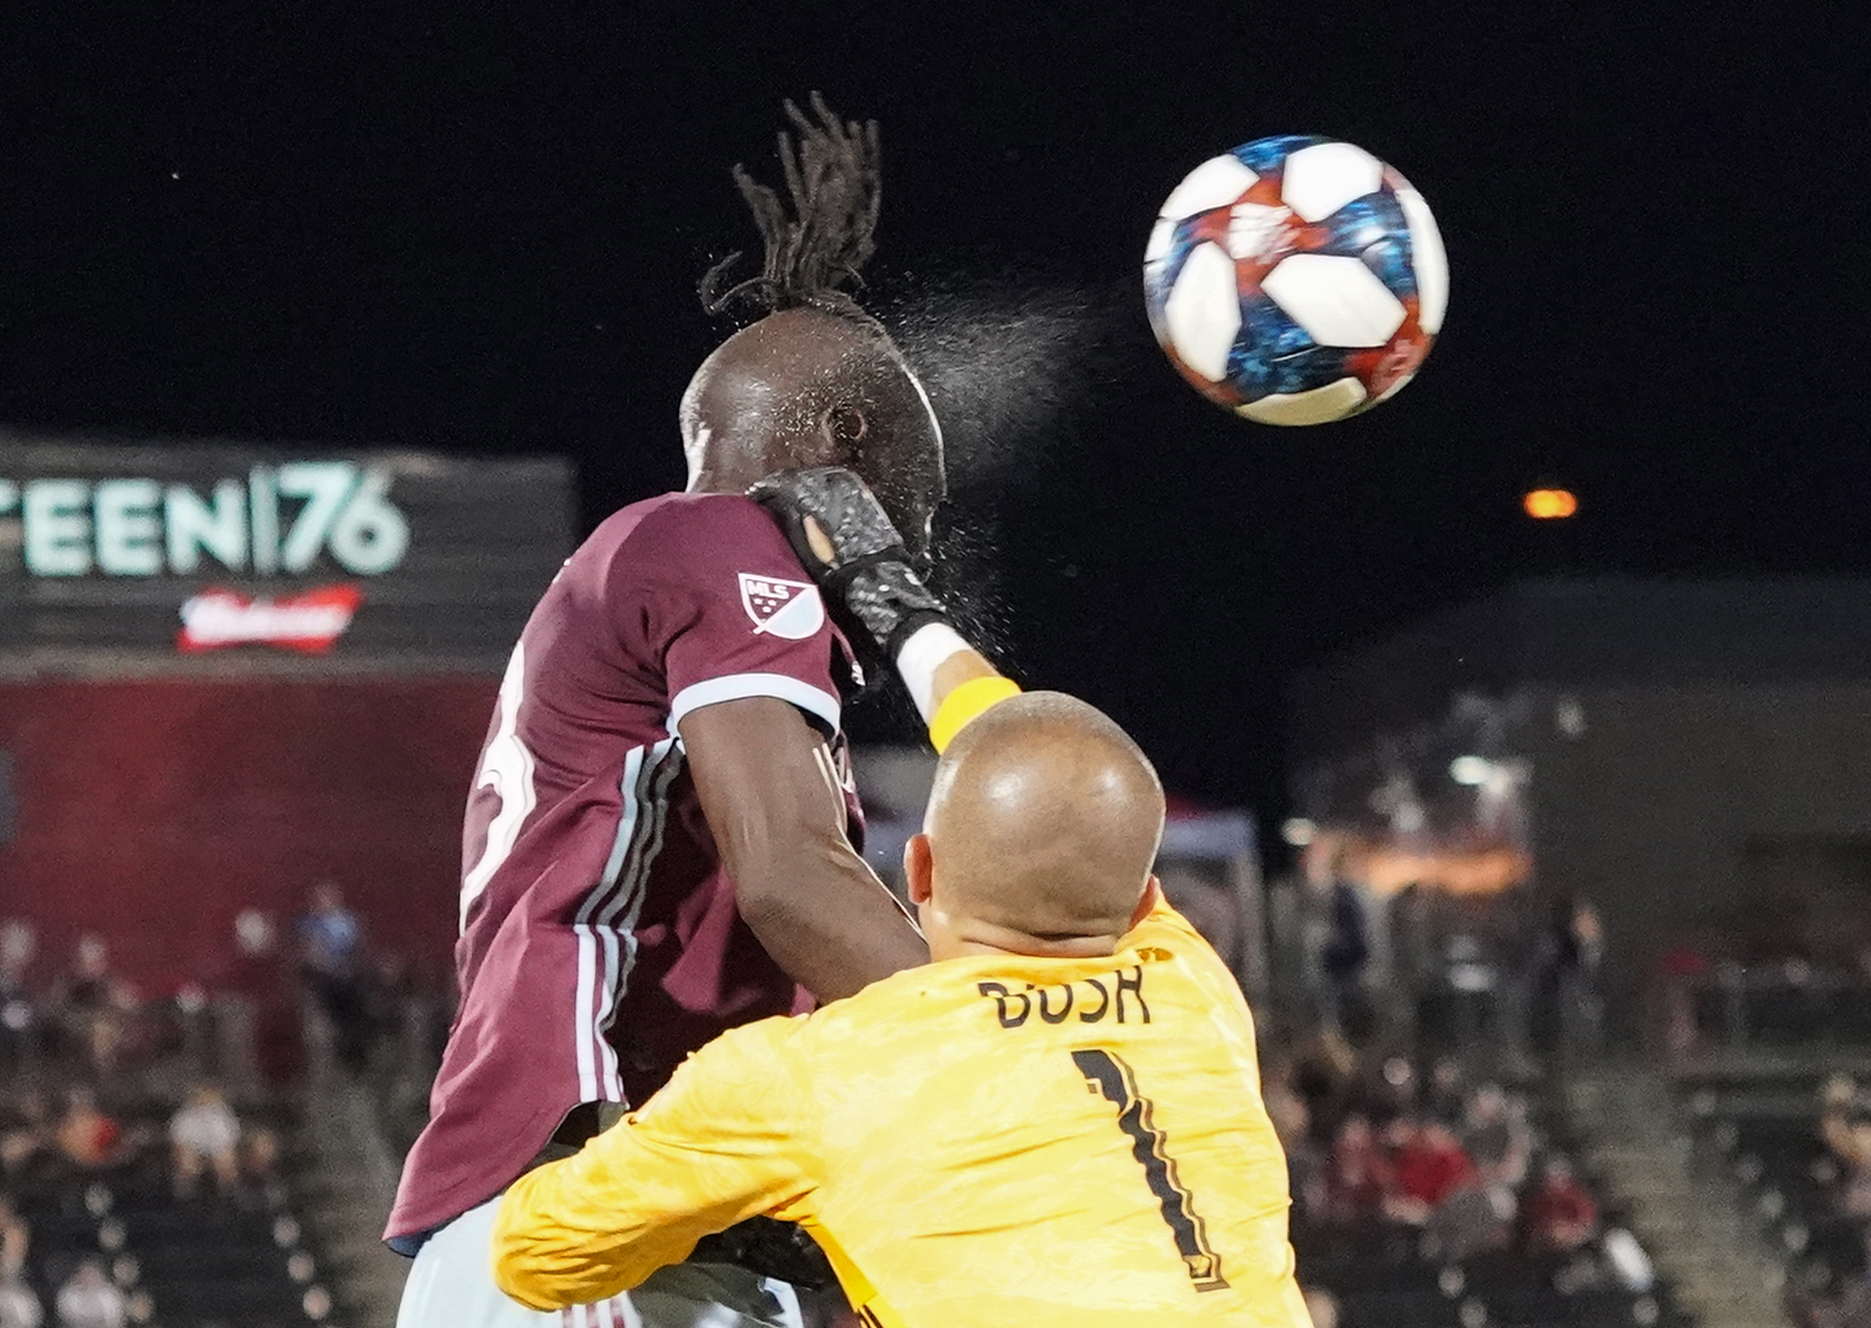 MLS: Montreal Impact at Colorado Rapids